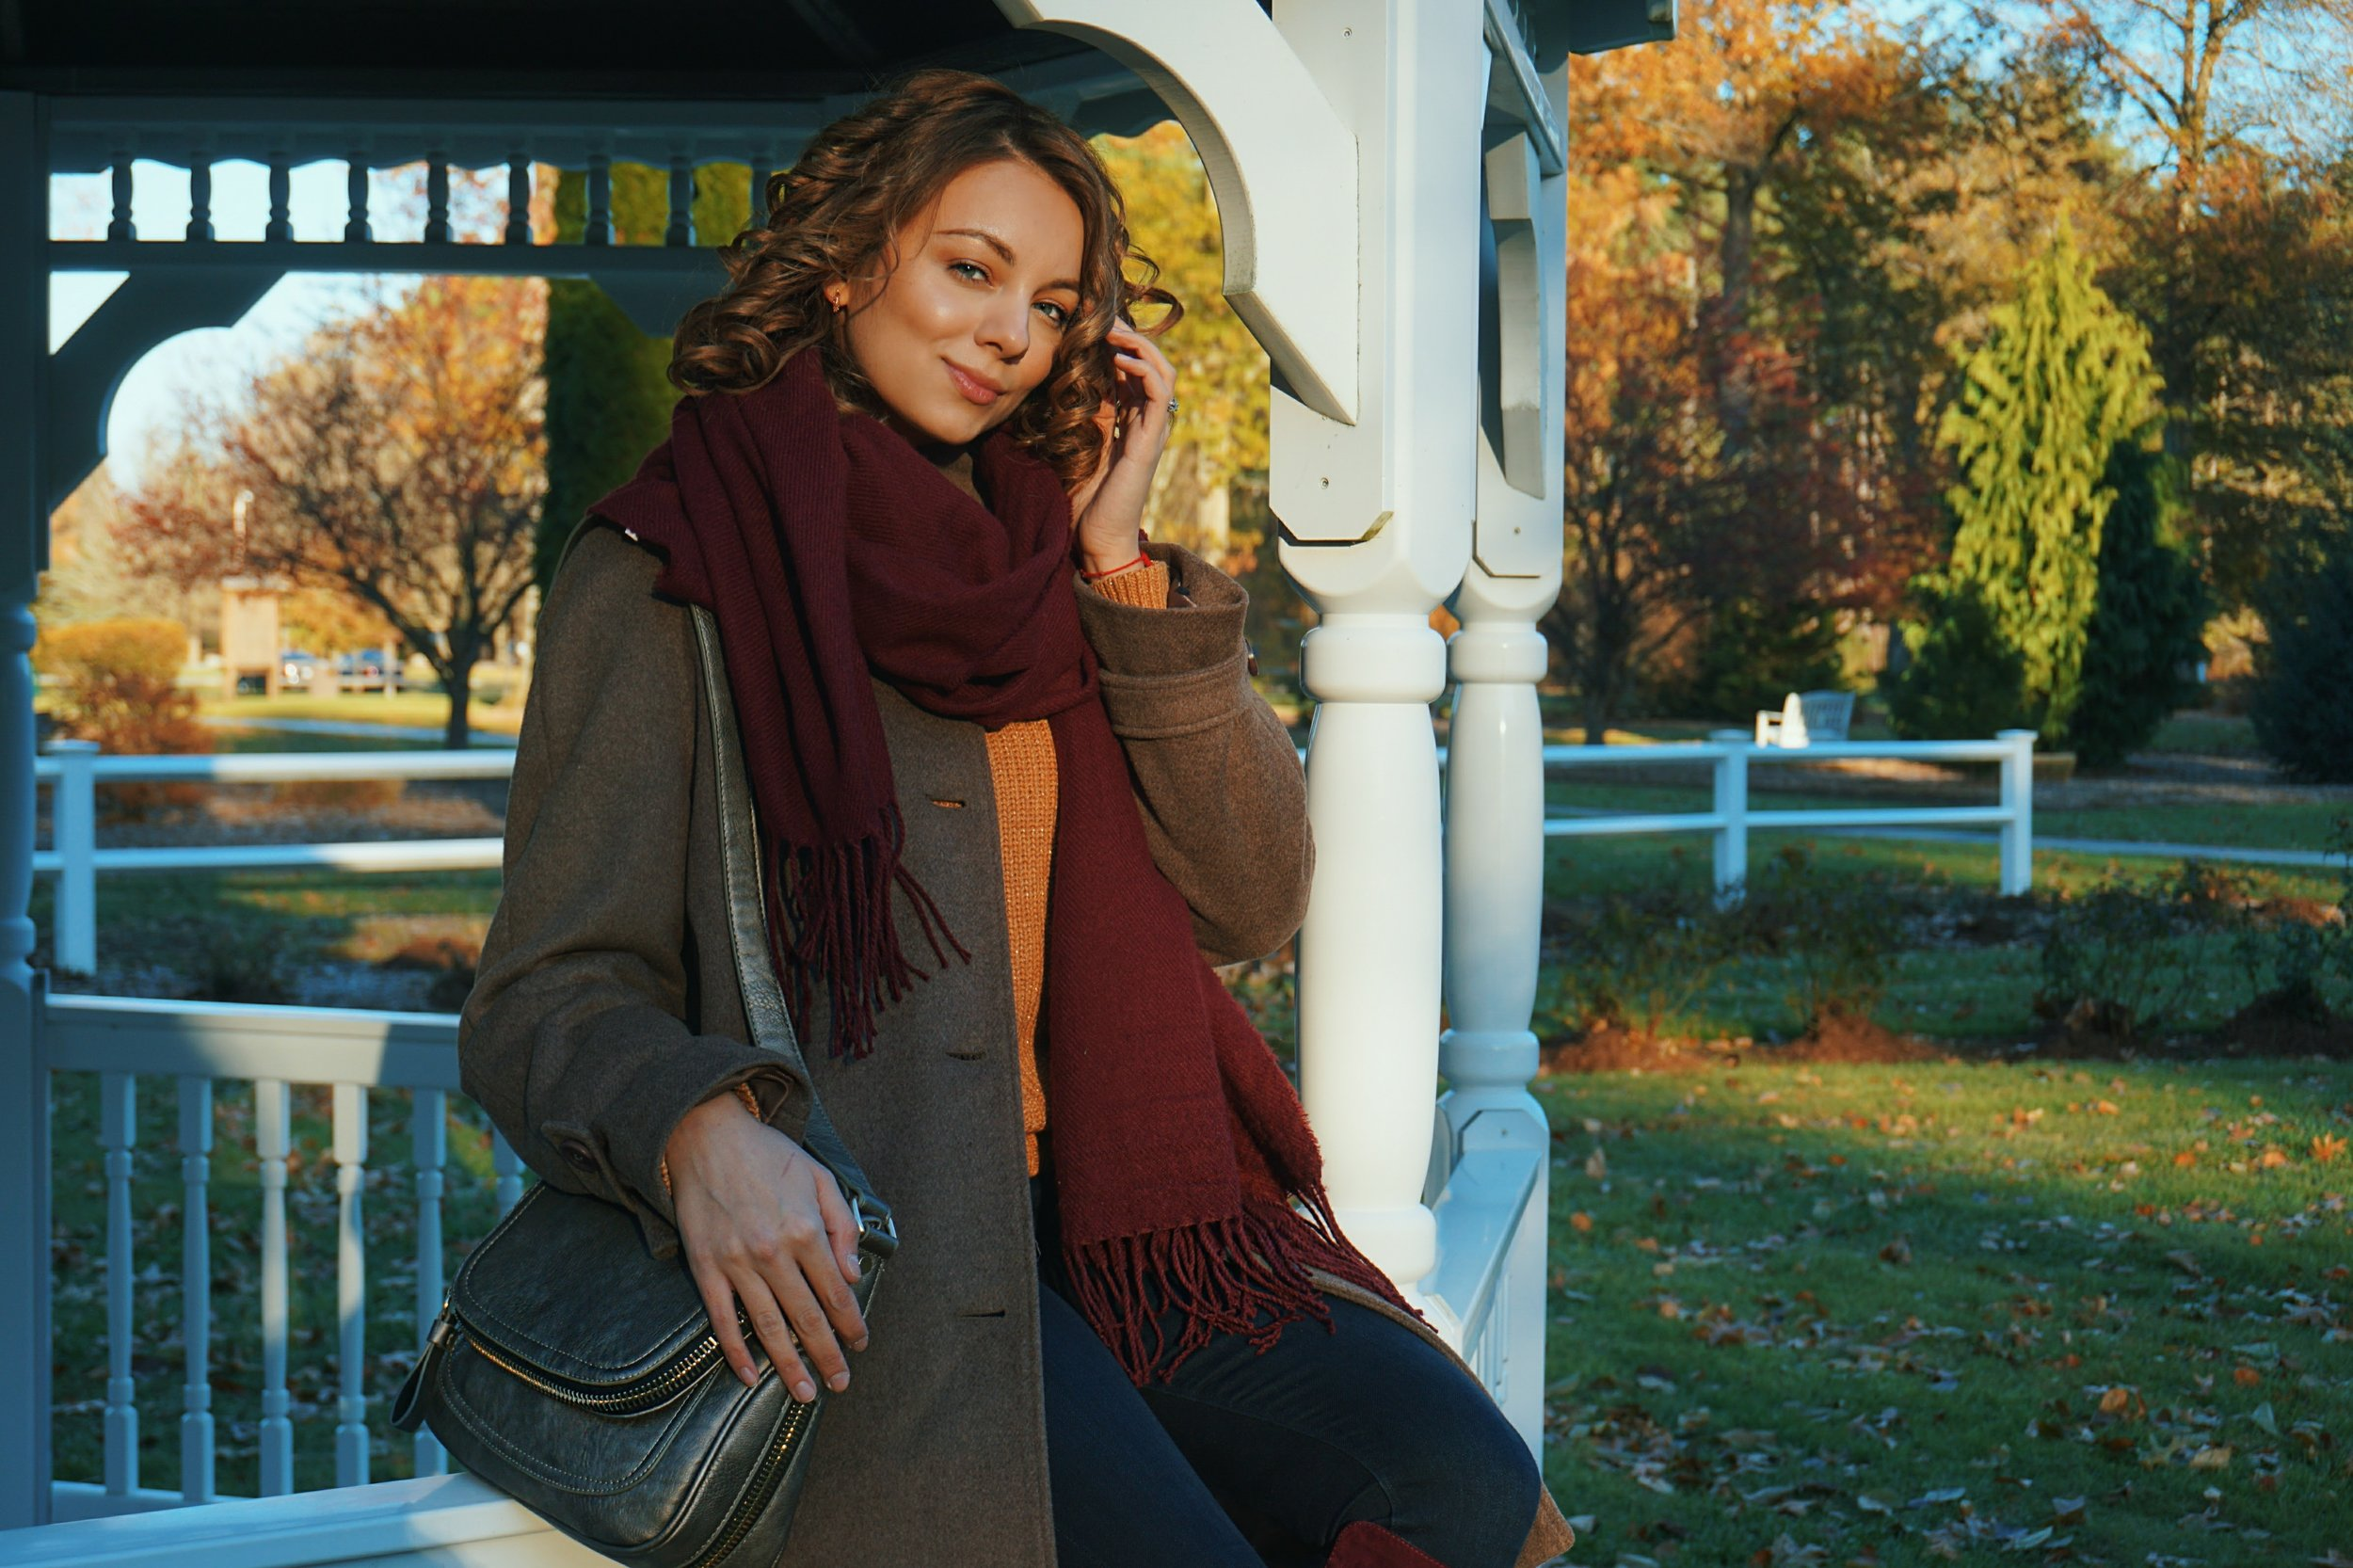 A blogger posing by the gazebo, wearing a warm autumn look.